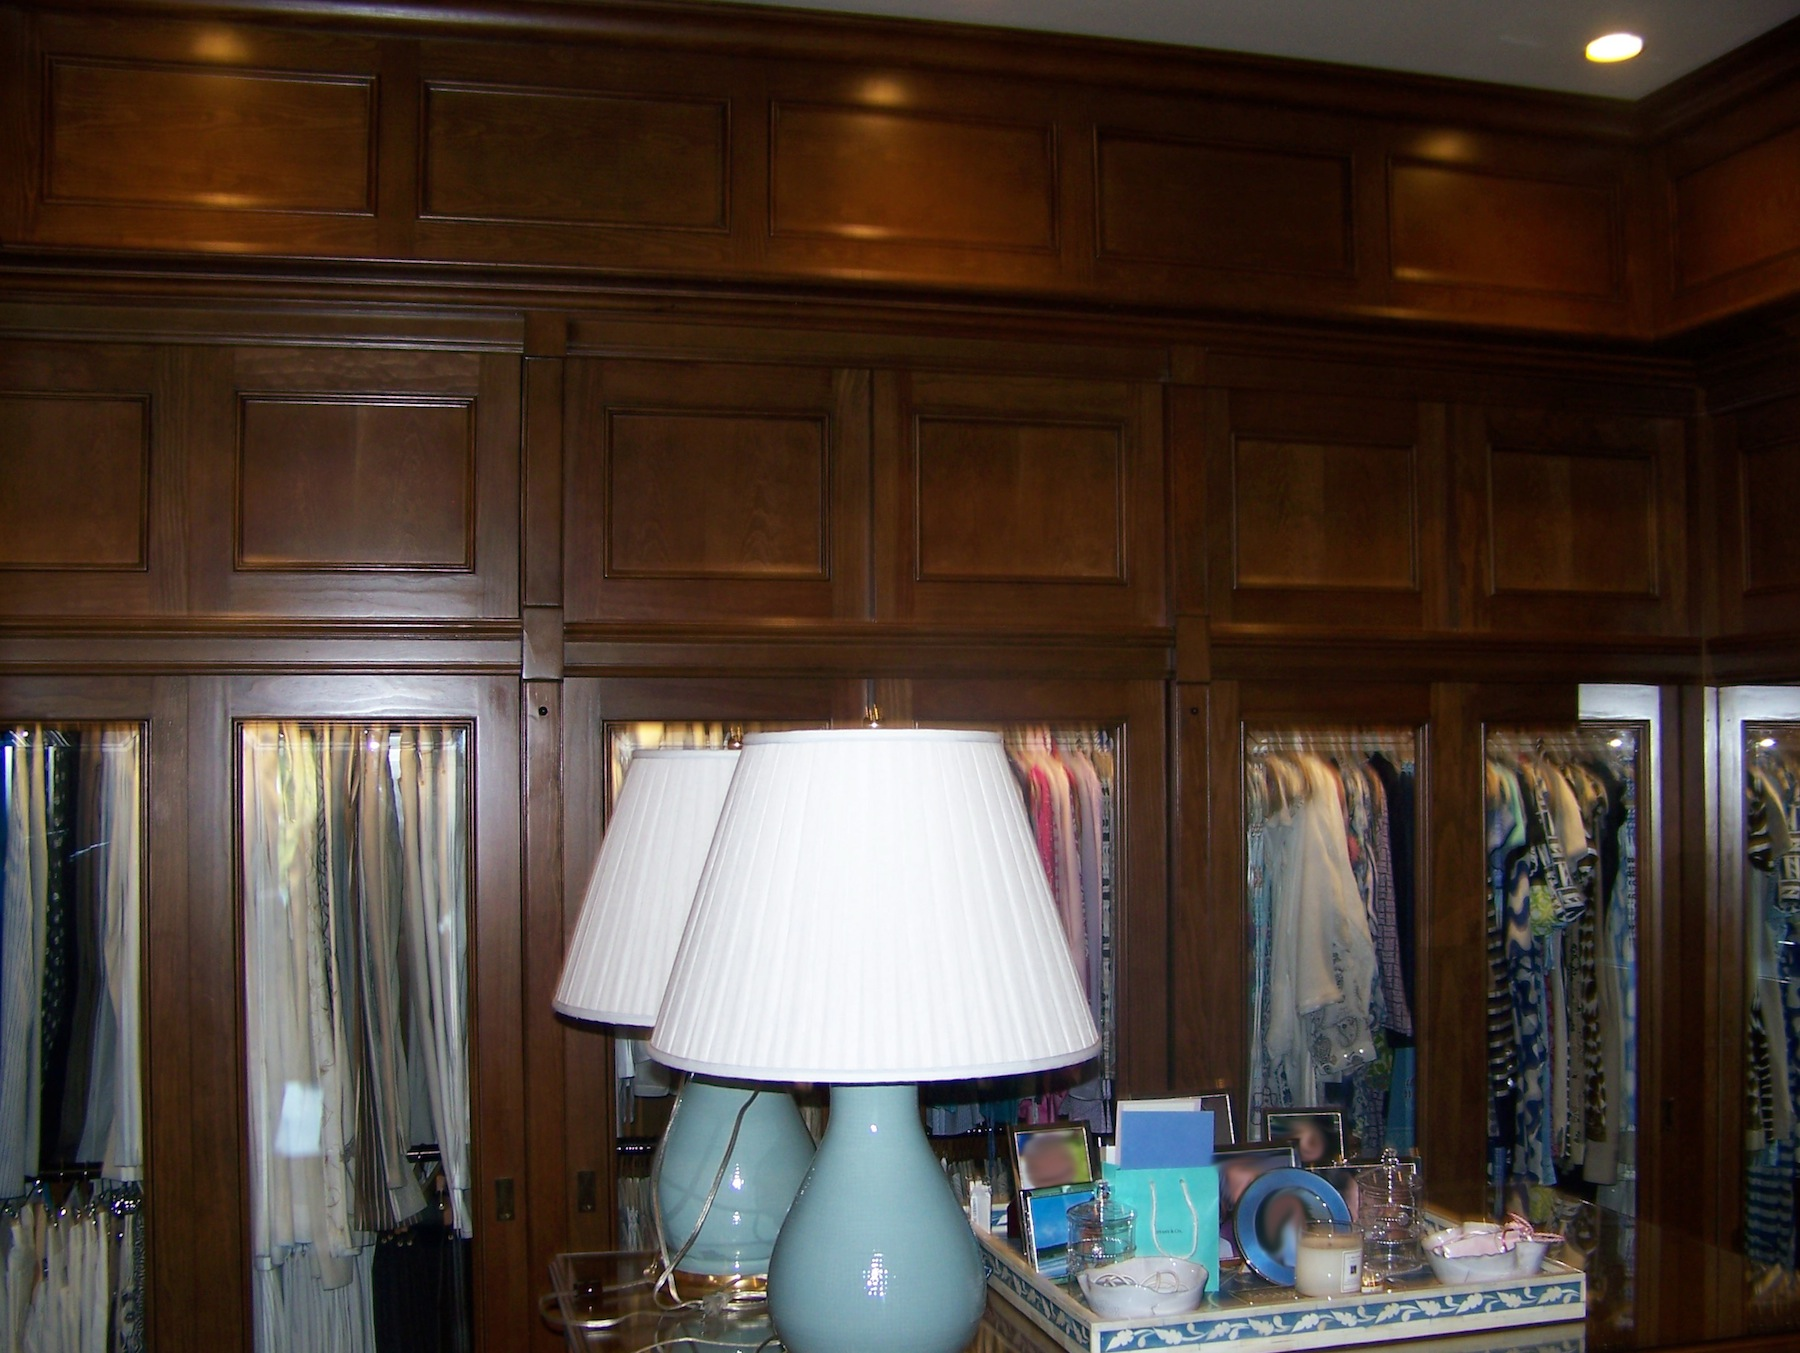 His/hers master closet, wall view - Nassau, Bahamas (Lyford Cay)